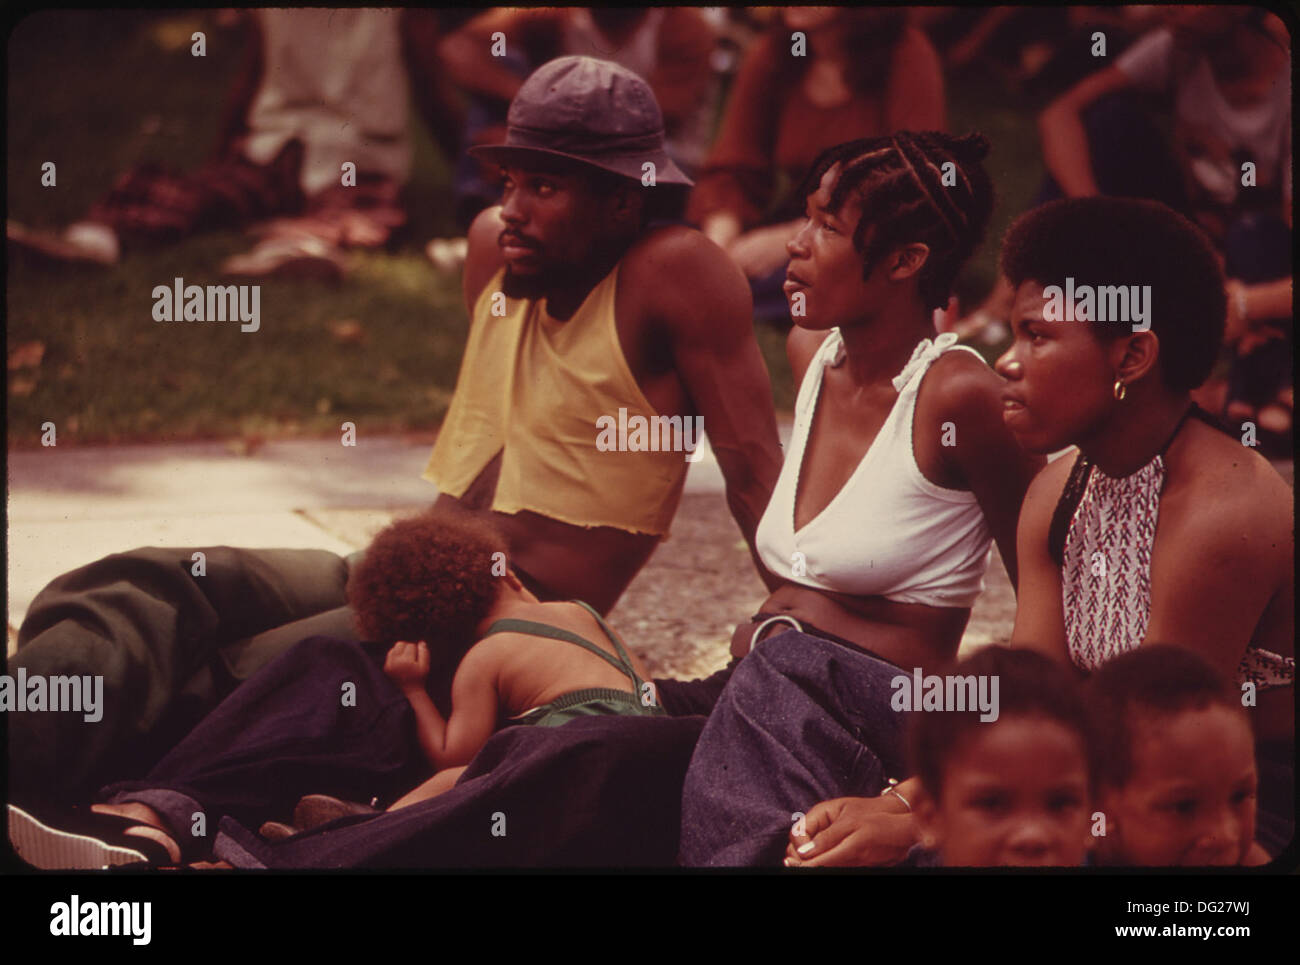 WEST VIRGINIA CELEBRATED ITS 110TH BIRTHDAY IN 1973 WITH ROCK CONCERTS ON THE STEPS OF THE STATE CAPITOL. WEST... Stock Photo